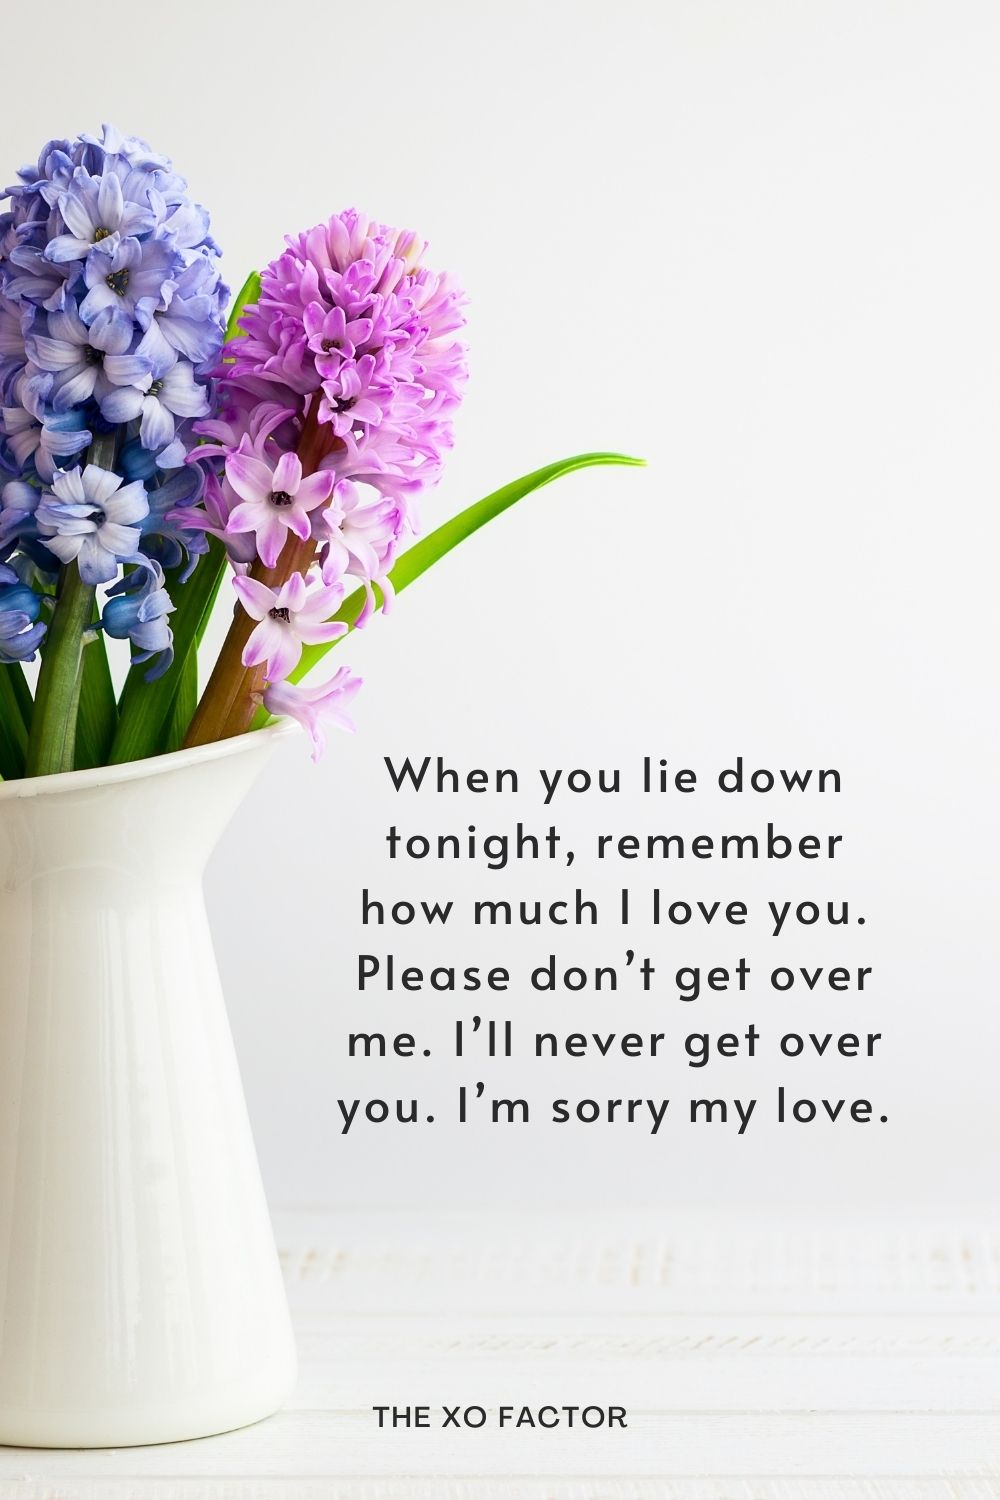 When you lie down tonight, remember how much I love you. Please don't get over me. I'll never get over you. I'm sorry my love.